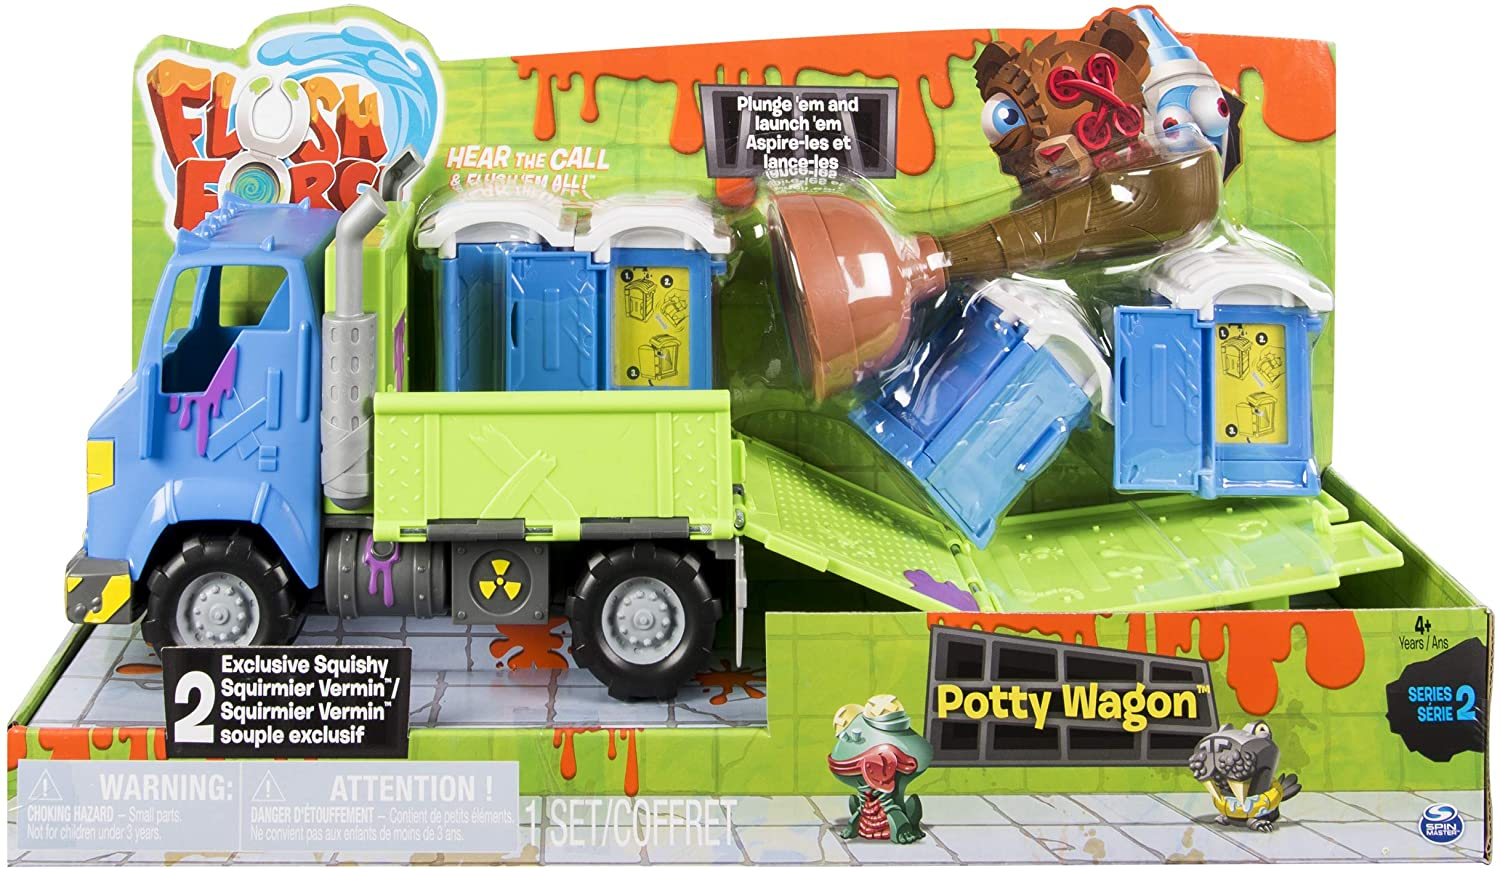 Flush Force – Series 2 Potty Wagon, with Gross Collectible Figures for Kids Ages 4 and Up (Colors/Styles May Vary)